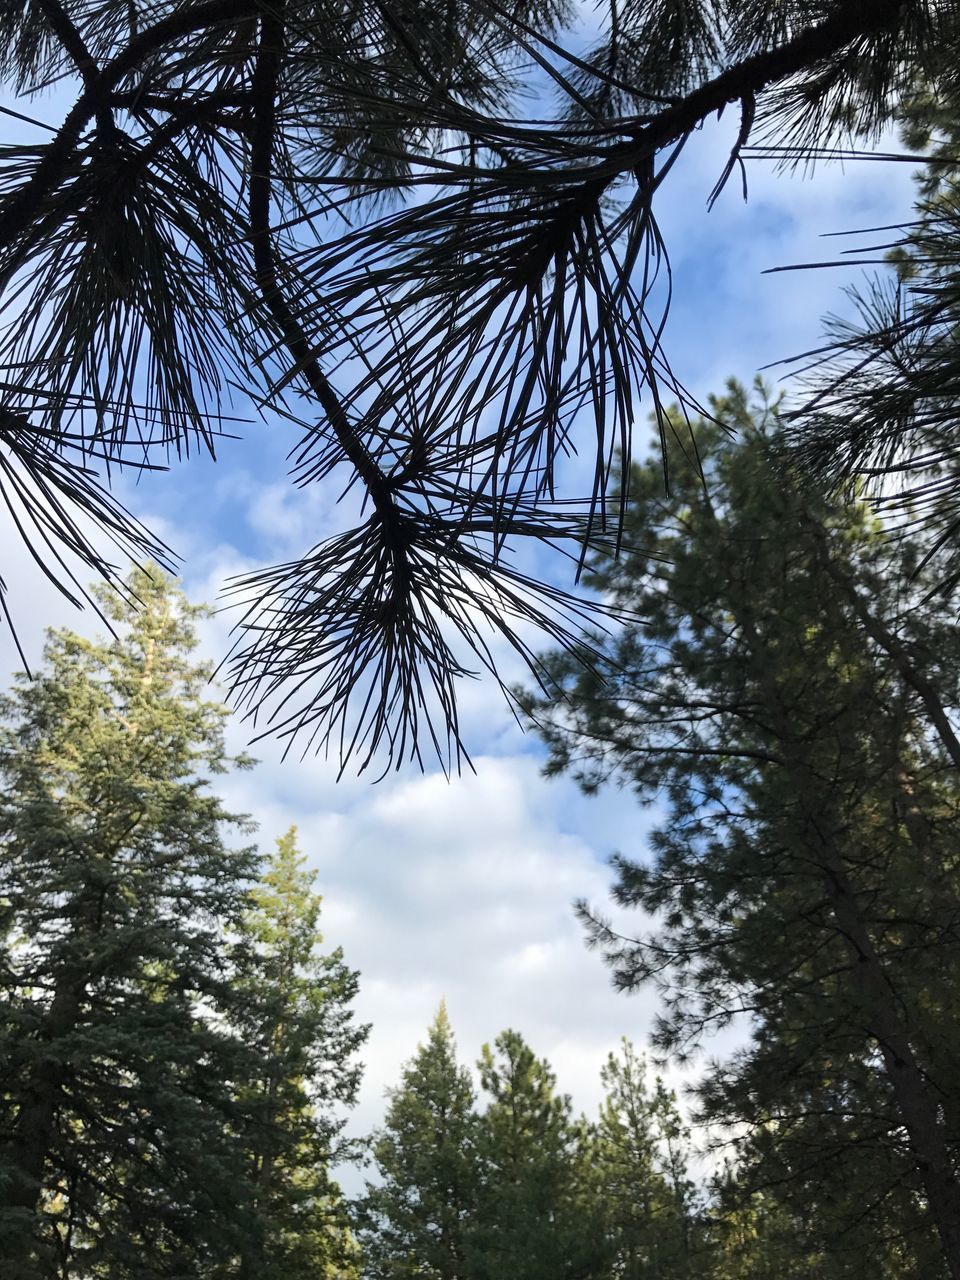 tree, low angle view, sky, growth, nature, day, no people, outdoors, beauty in nature, branch, cloud - sky, forest